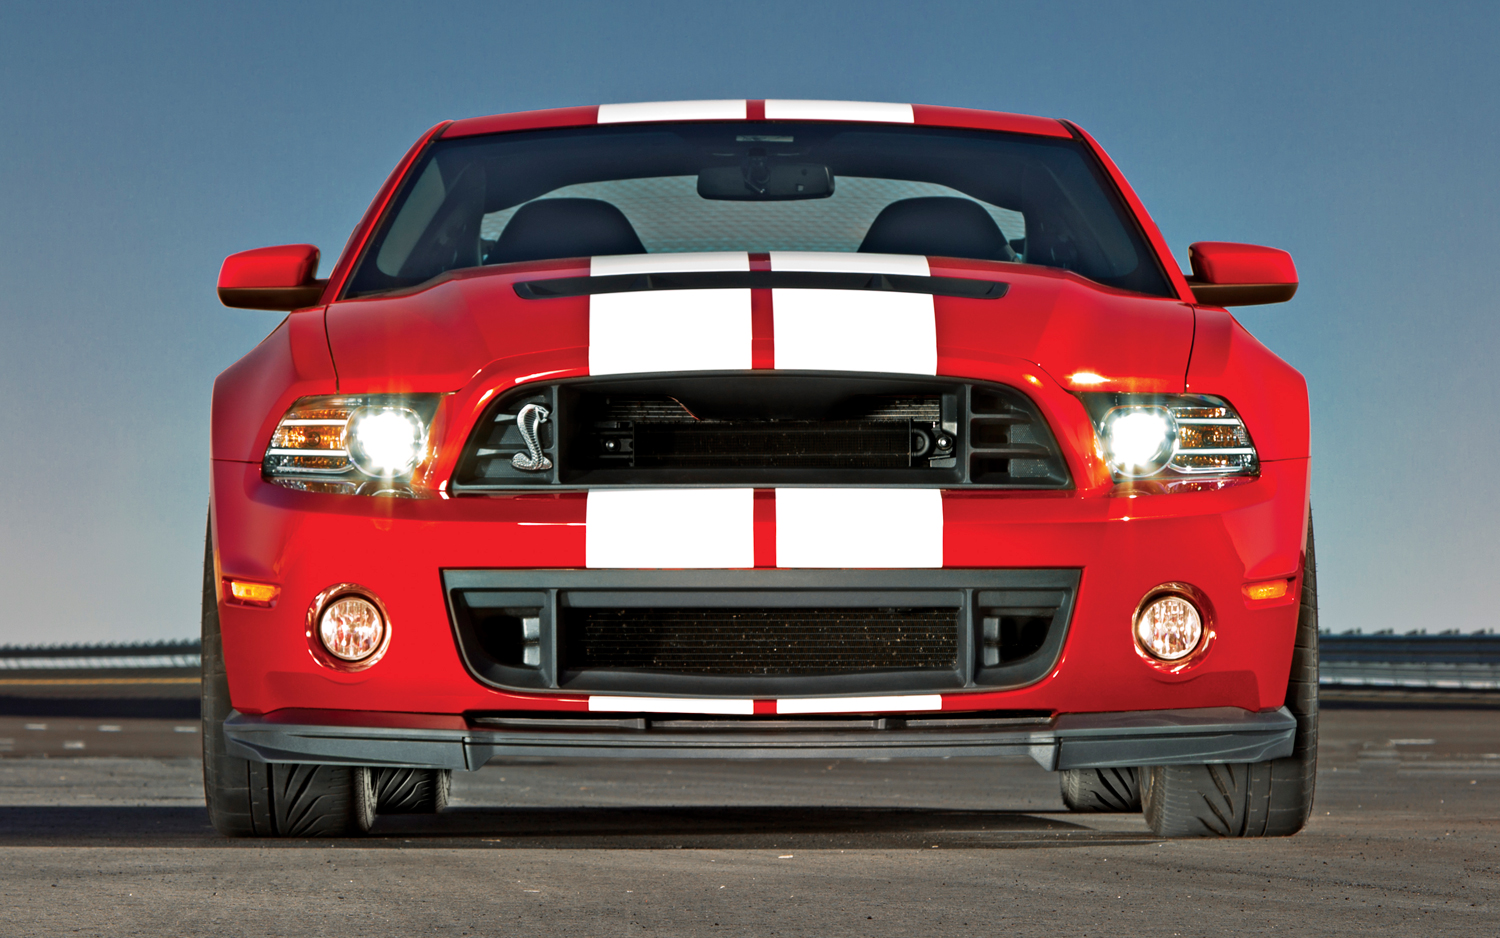 2013 Ford Mustang Shelby GT500 Cobra photo - 2